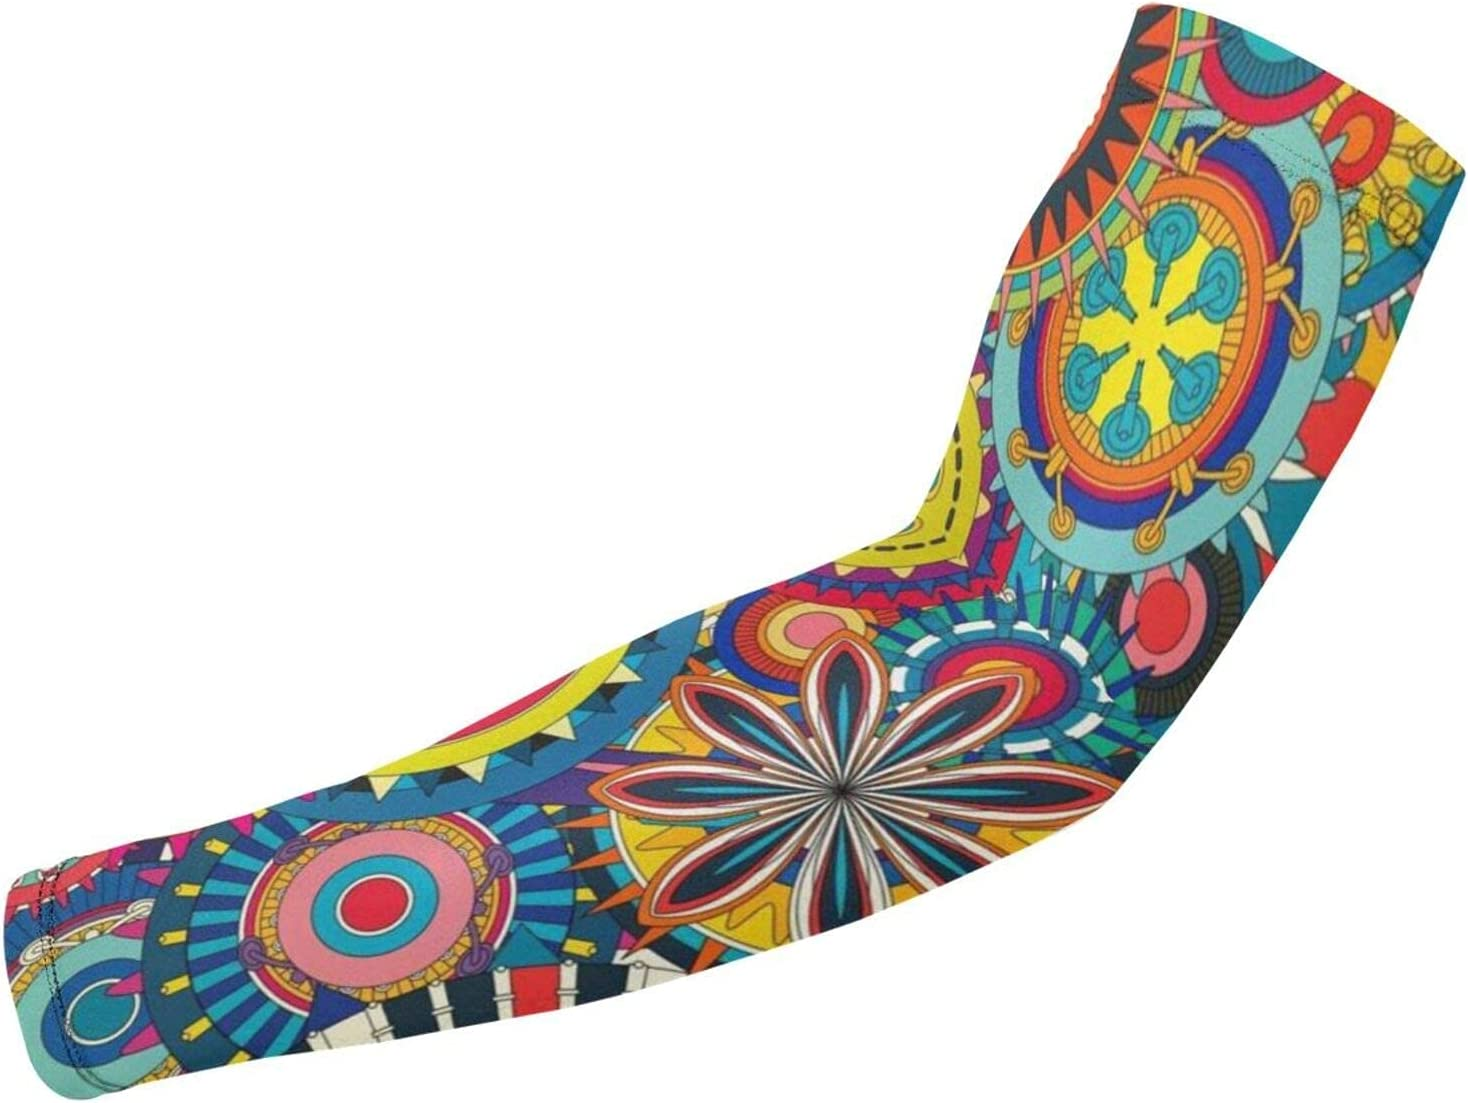 OMOXILOUY Psychedelic Clearance SALE Limited time Trippy Mandala Flower Gear Arm Los Angeles Mall Sunbl Guard